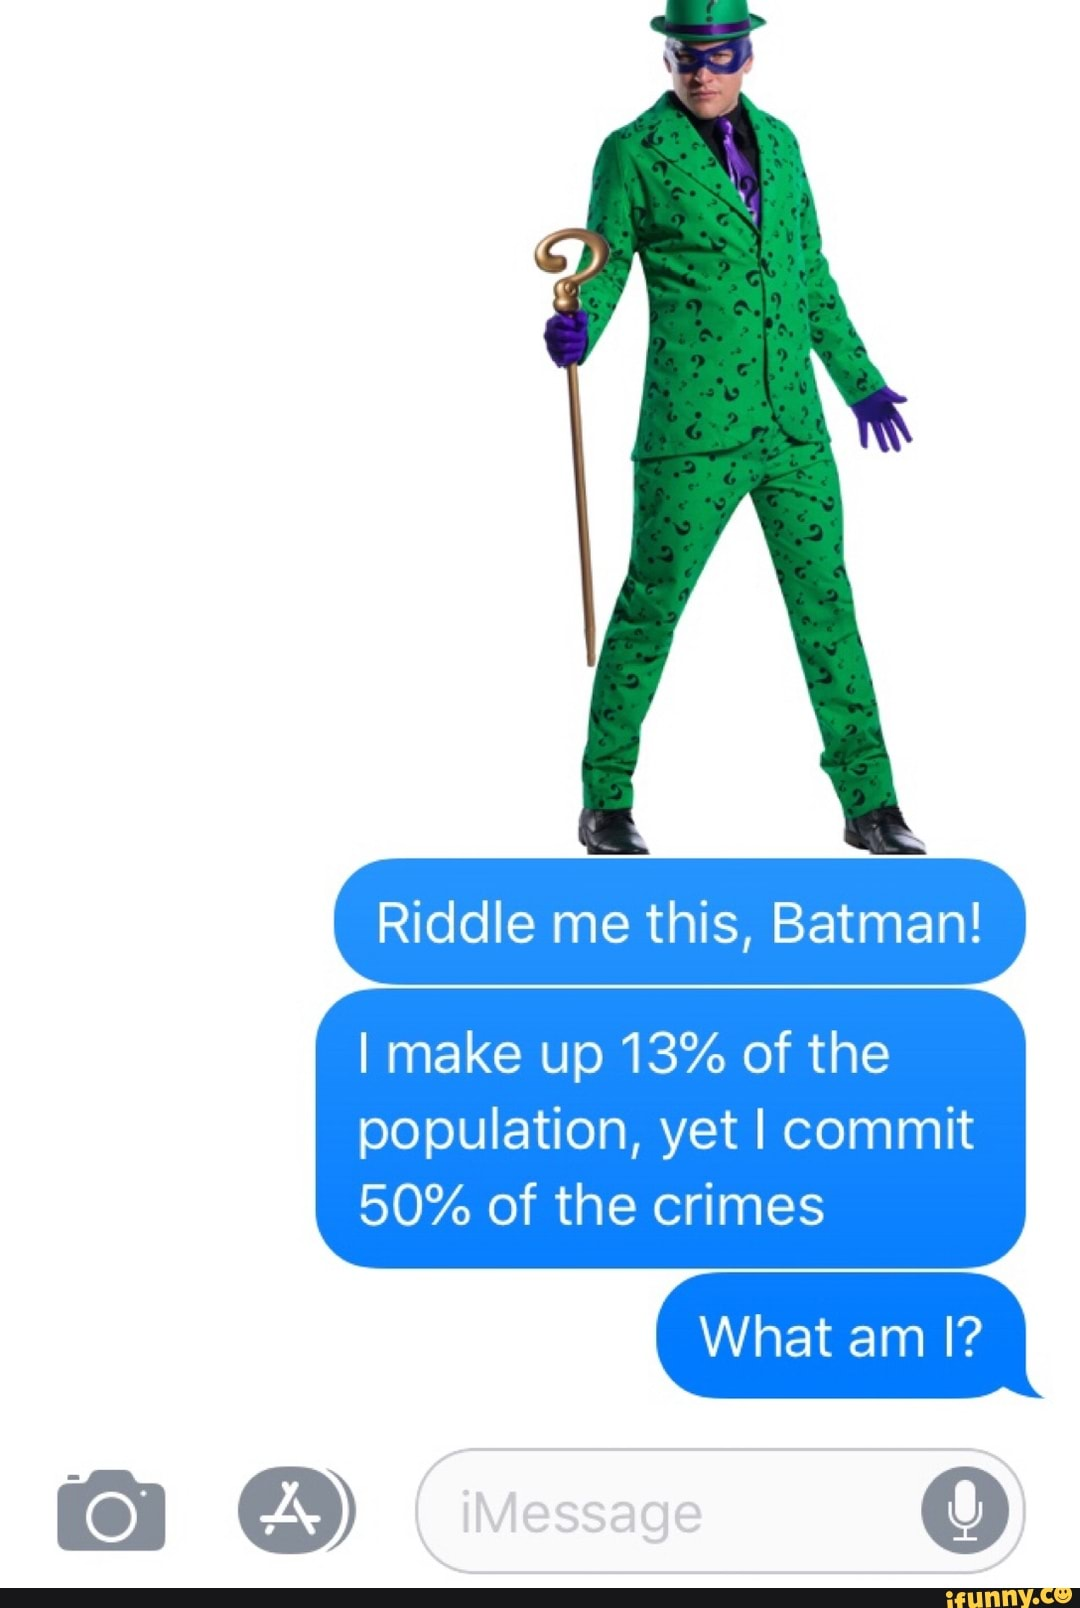 G T Riddle This Batman Imake Up 13 Of The Population Yet I Commit 50 Of The Crimes Ifunny